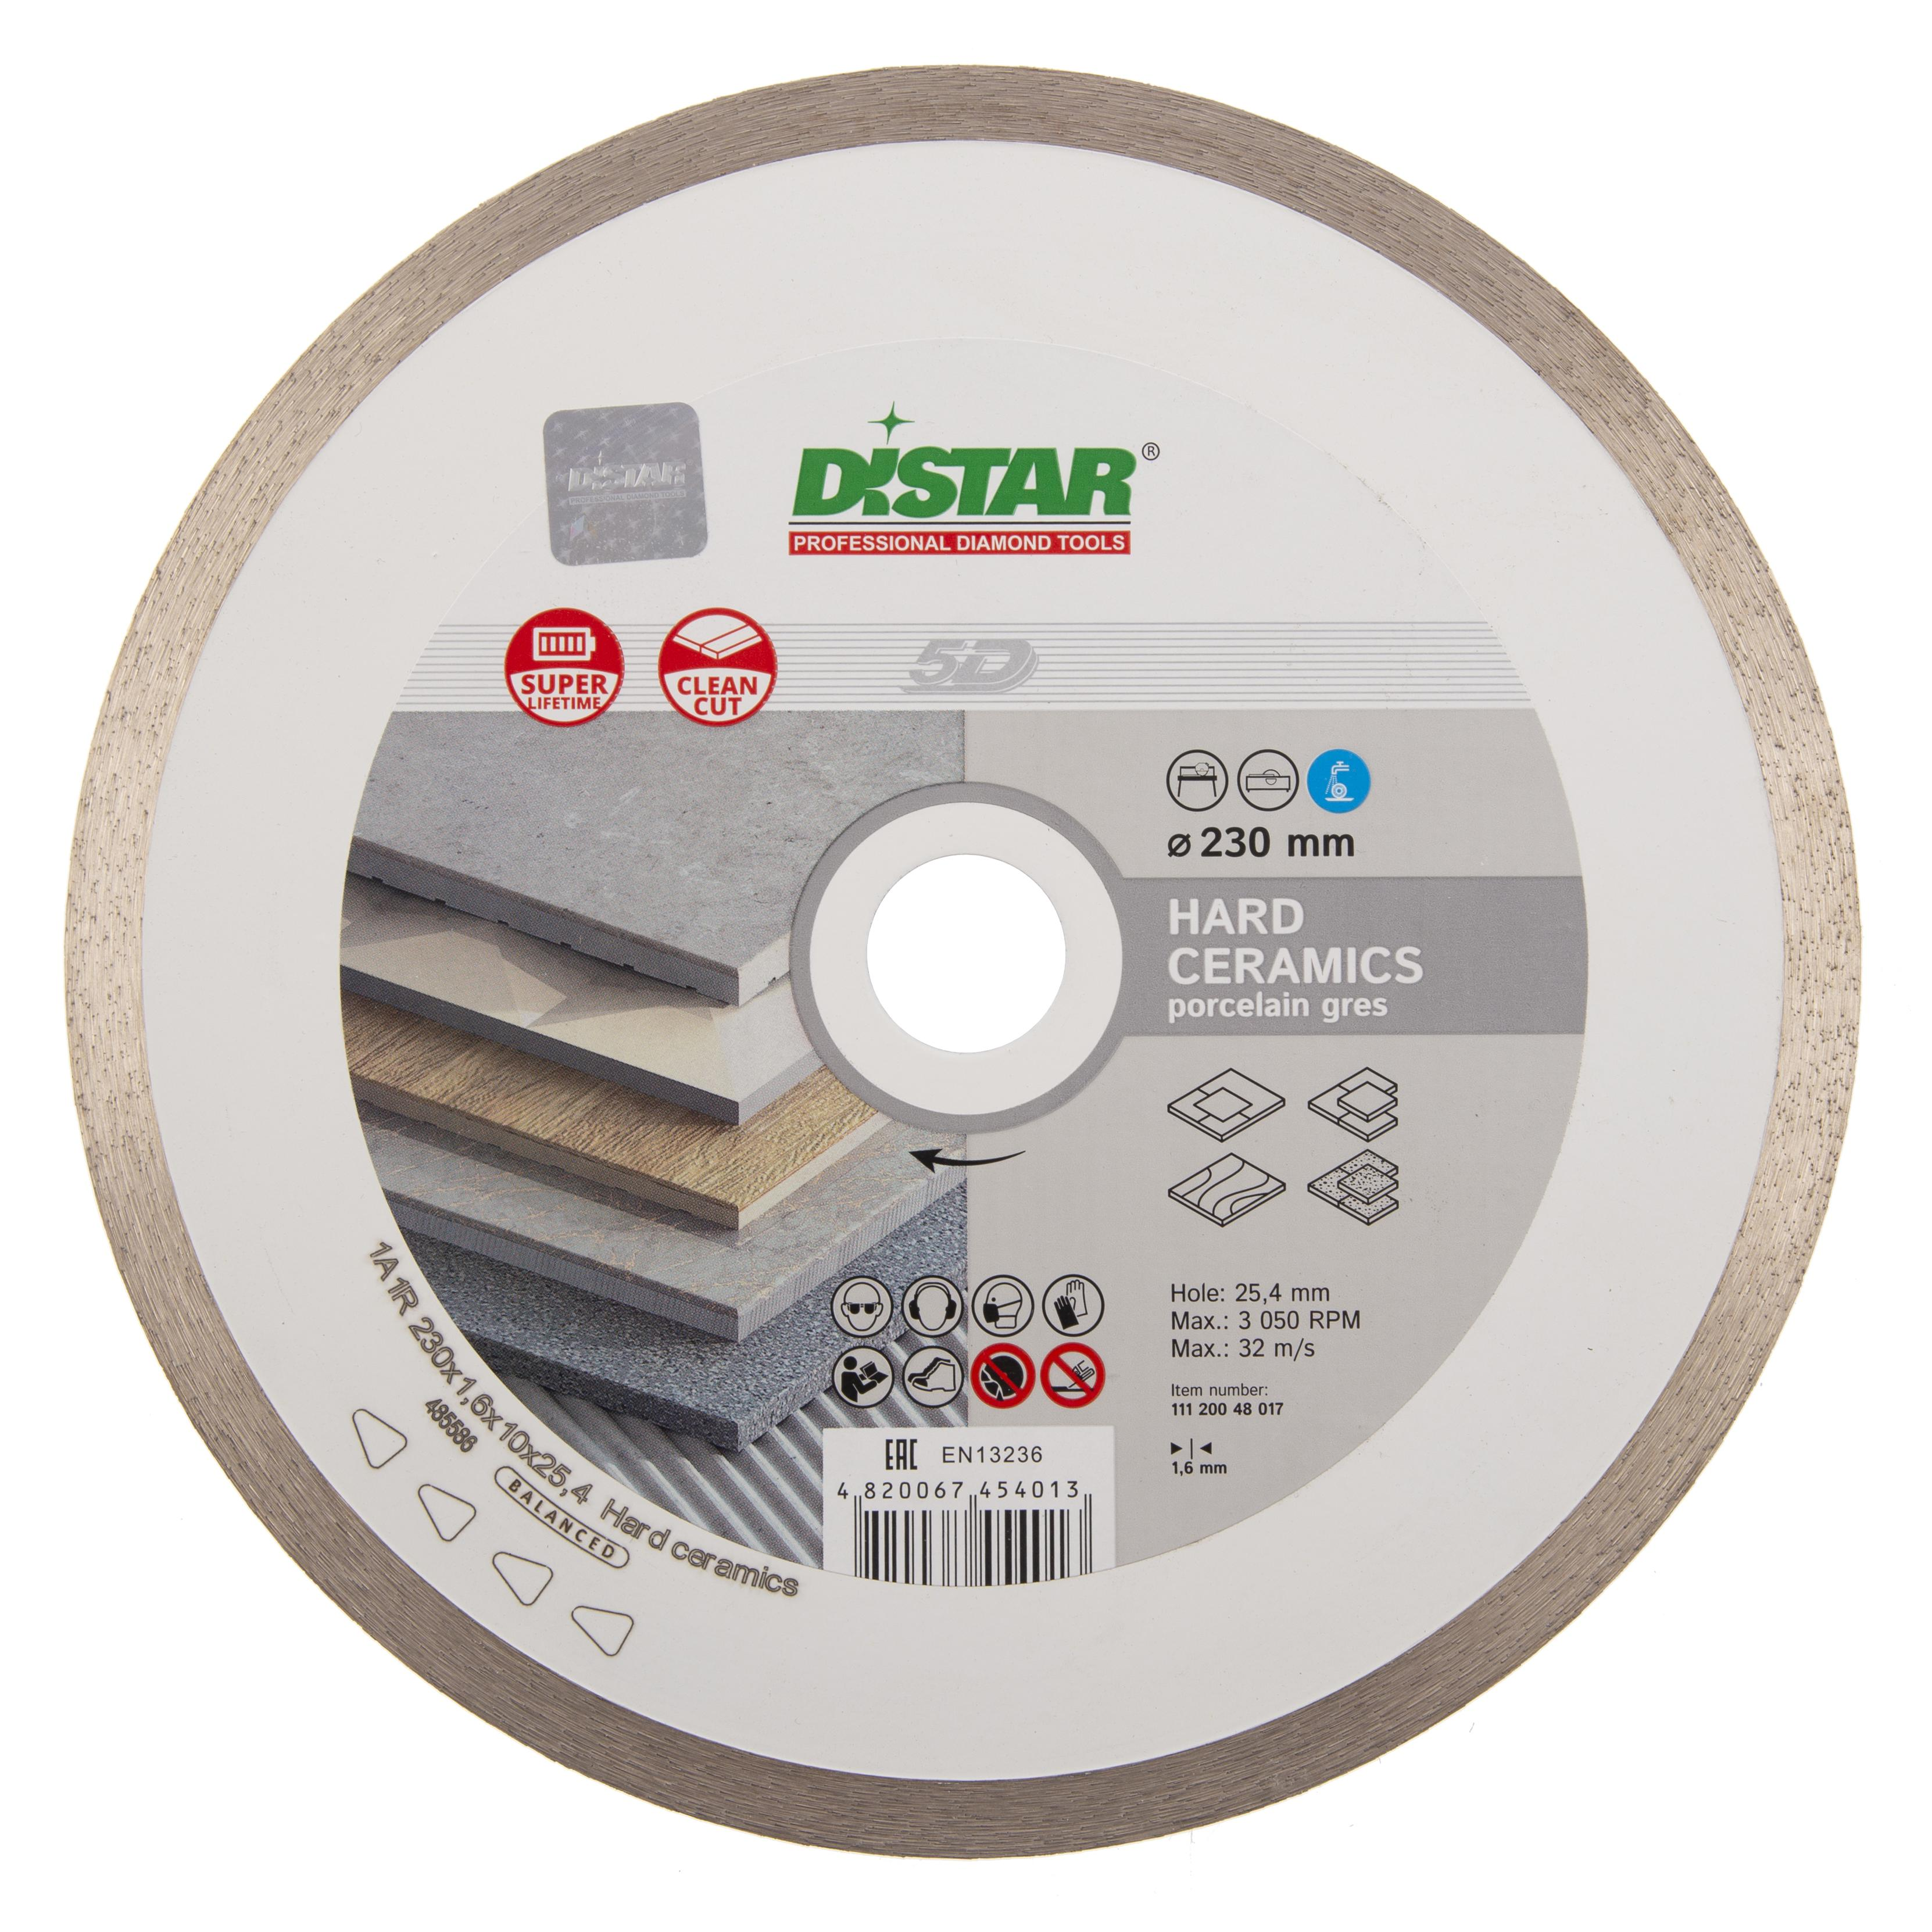 Круг алмазный Di-star 1a1r hard ceramics rs25t 262185 230 Х 25.4 круг алмазный по керамике 1a1r ceramics elite 200x1 6x7 0x25 4 diam 000547